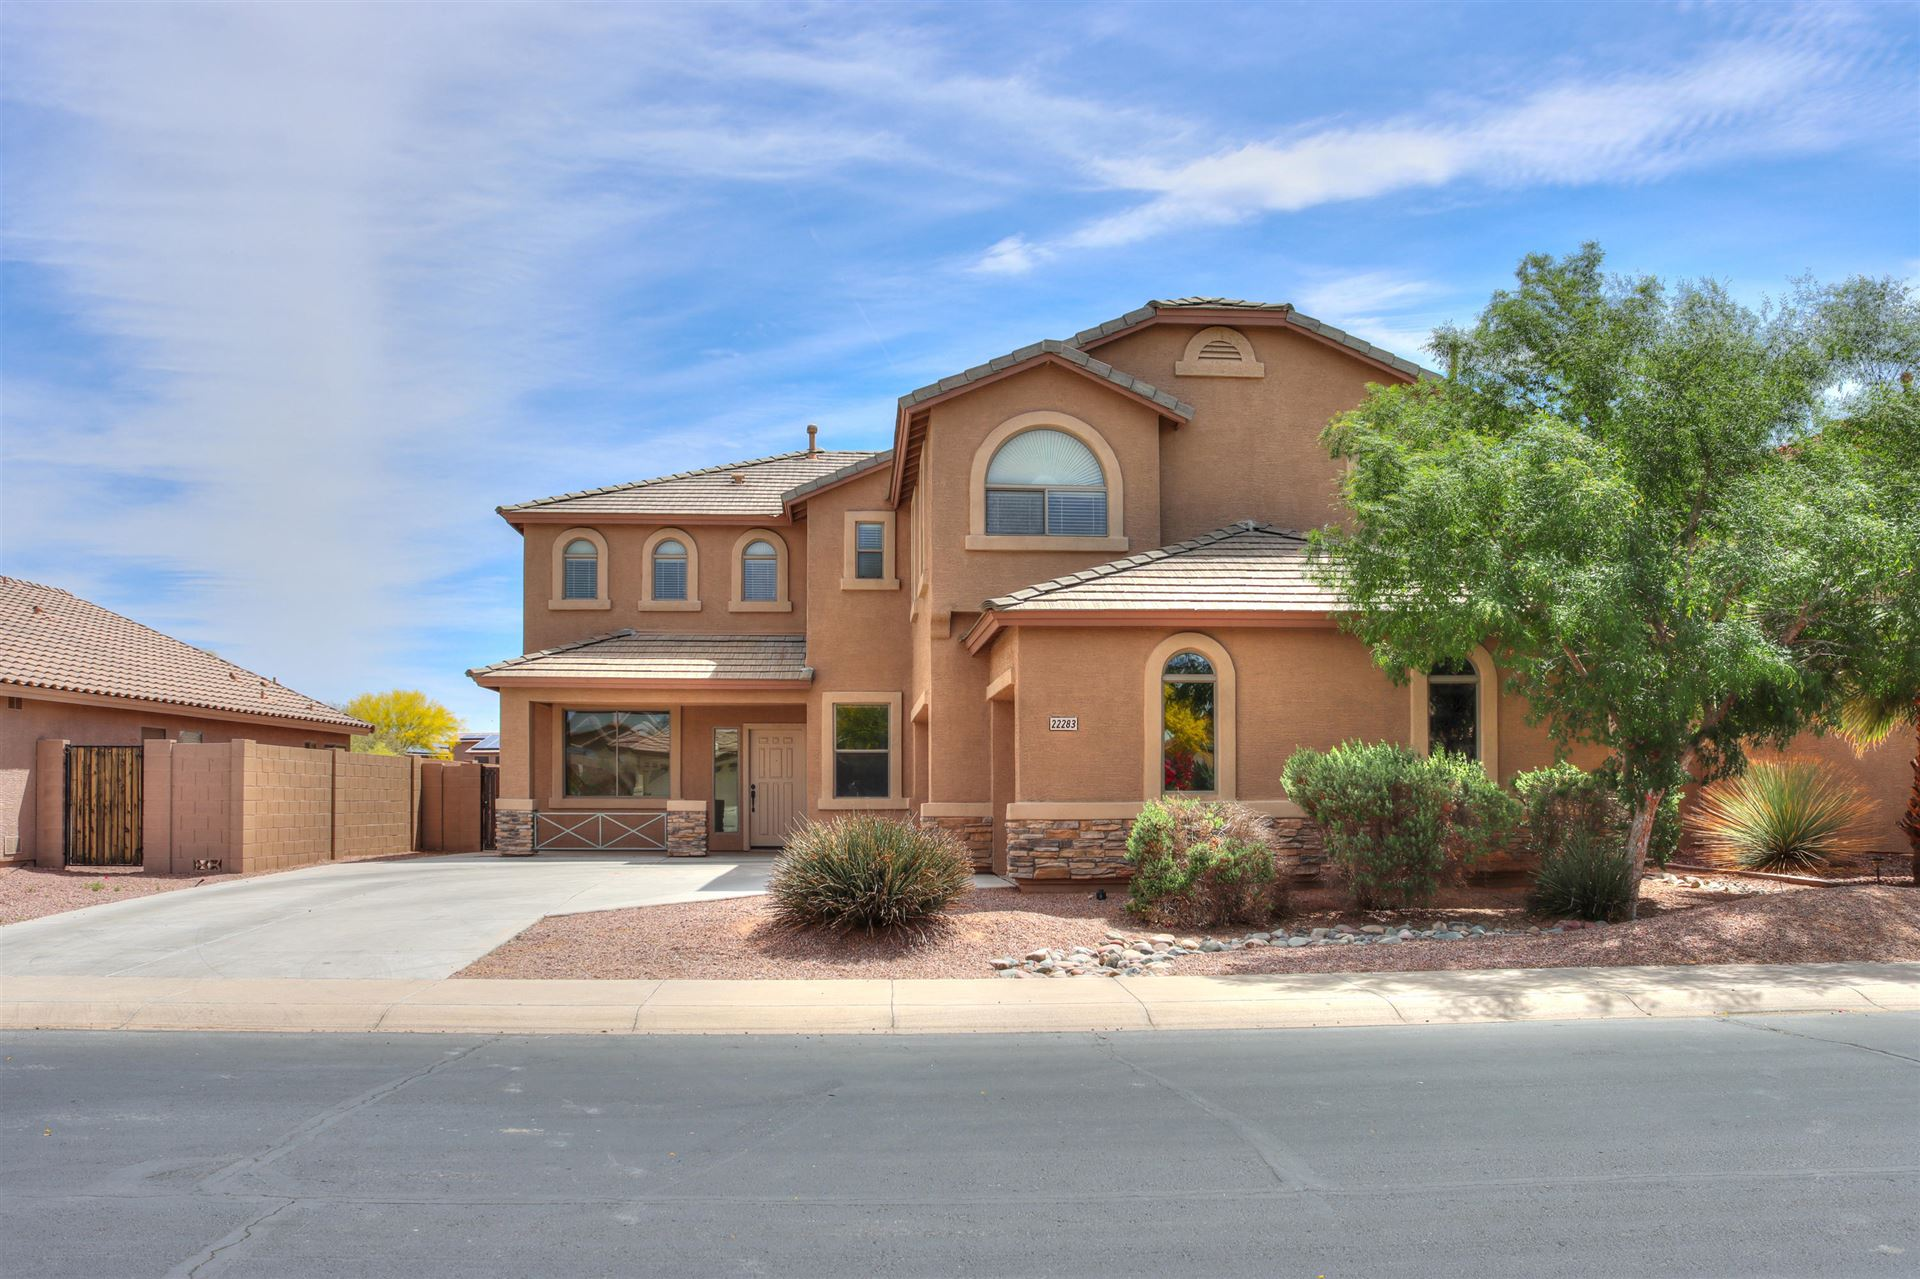 Photo for 22283 N VAN LOO Drive, Maricopa, AZ 85138 (MLS # 6228518)